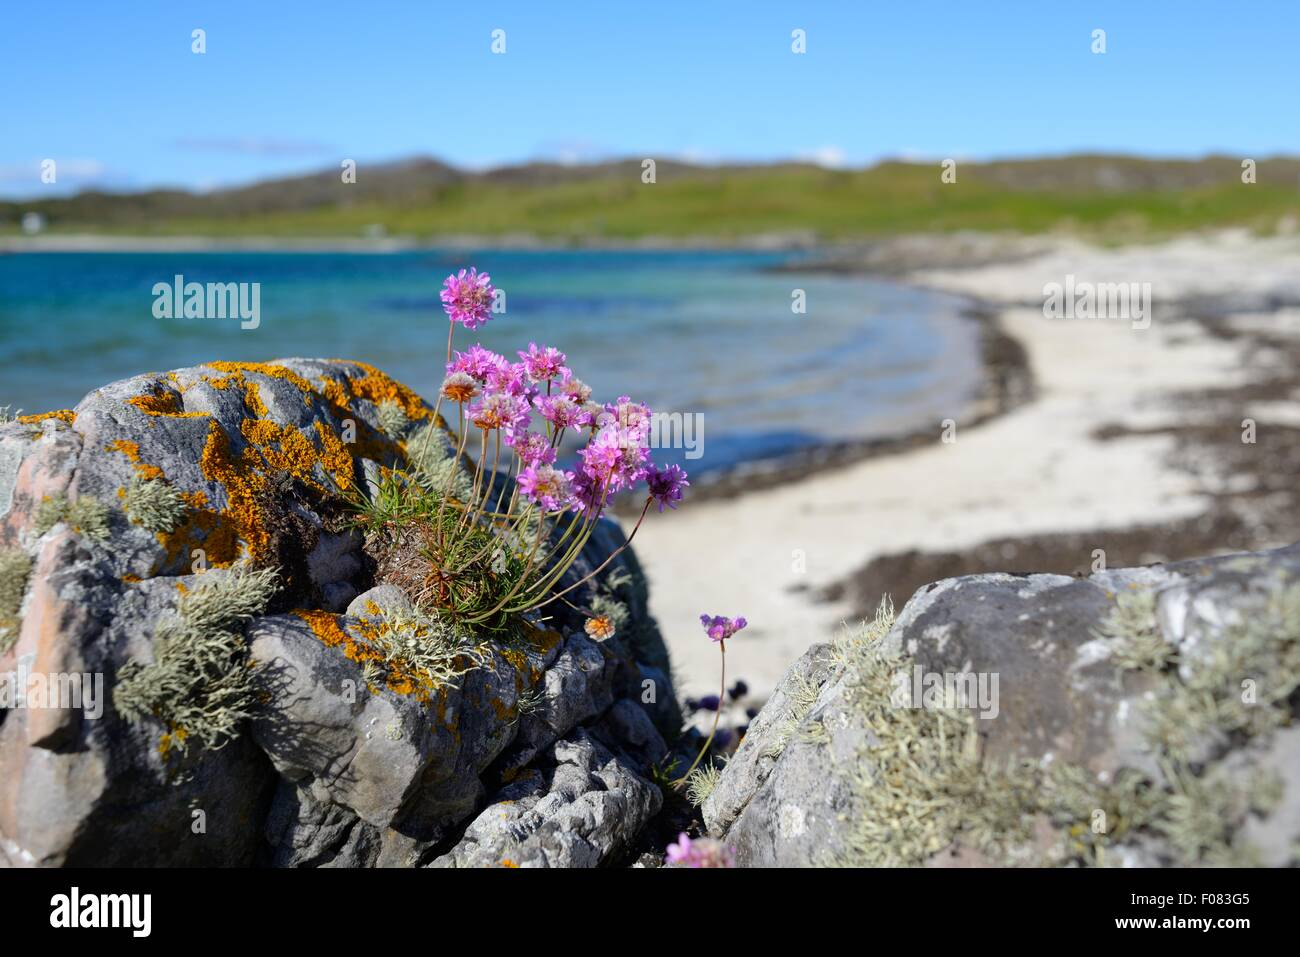 Wild purple flowers germinating and growing on rocks among lichens on a beach on the west coast of Scotland. - Stock Image